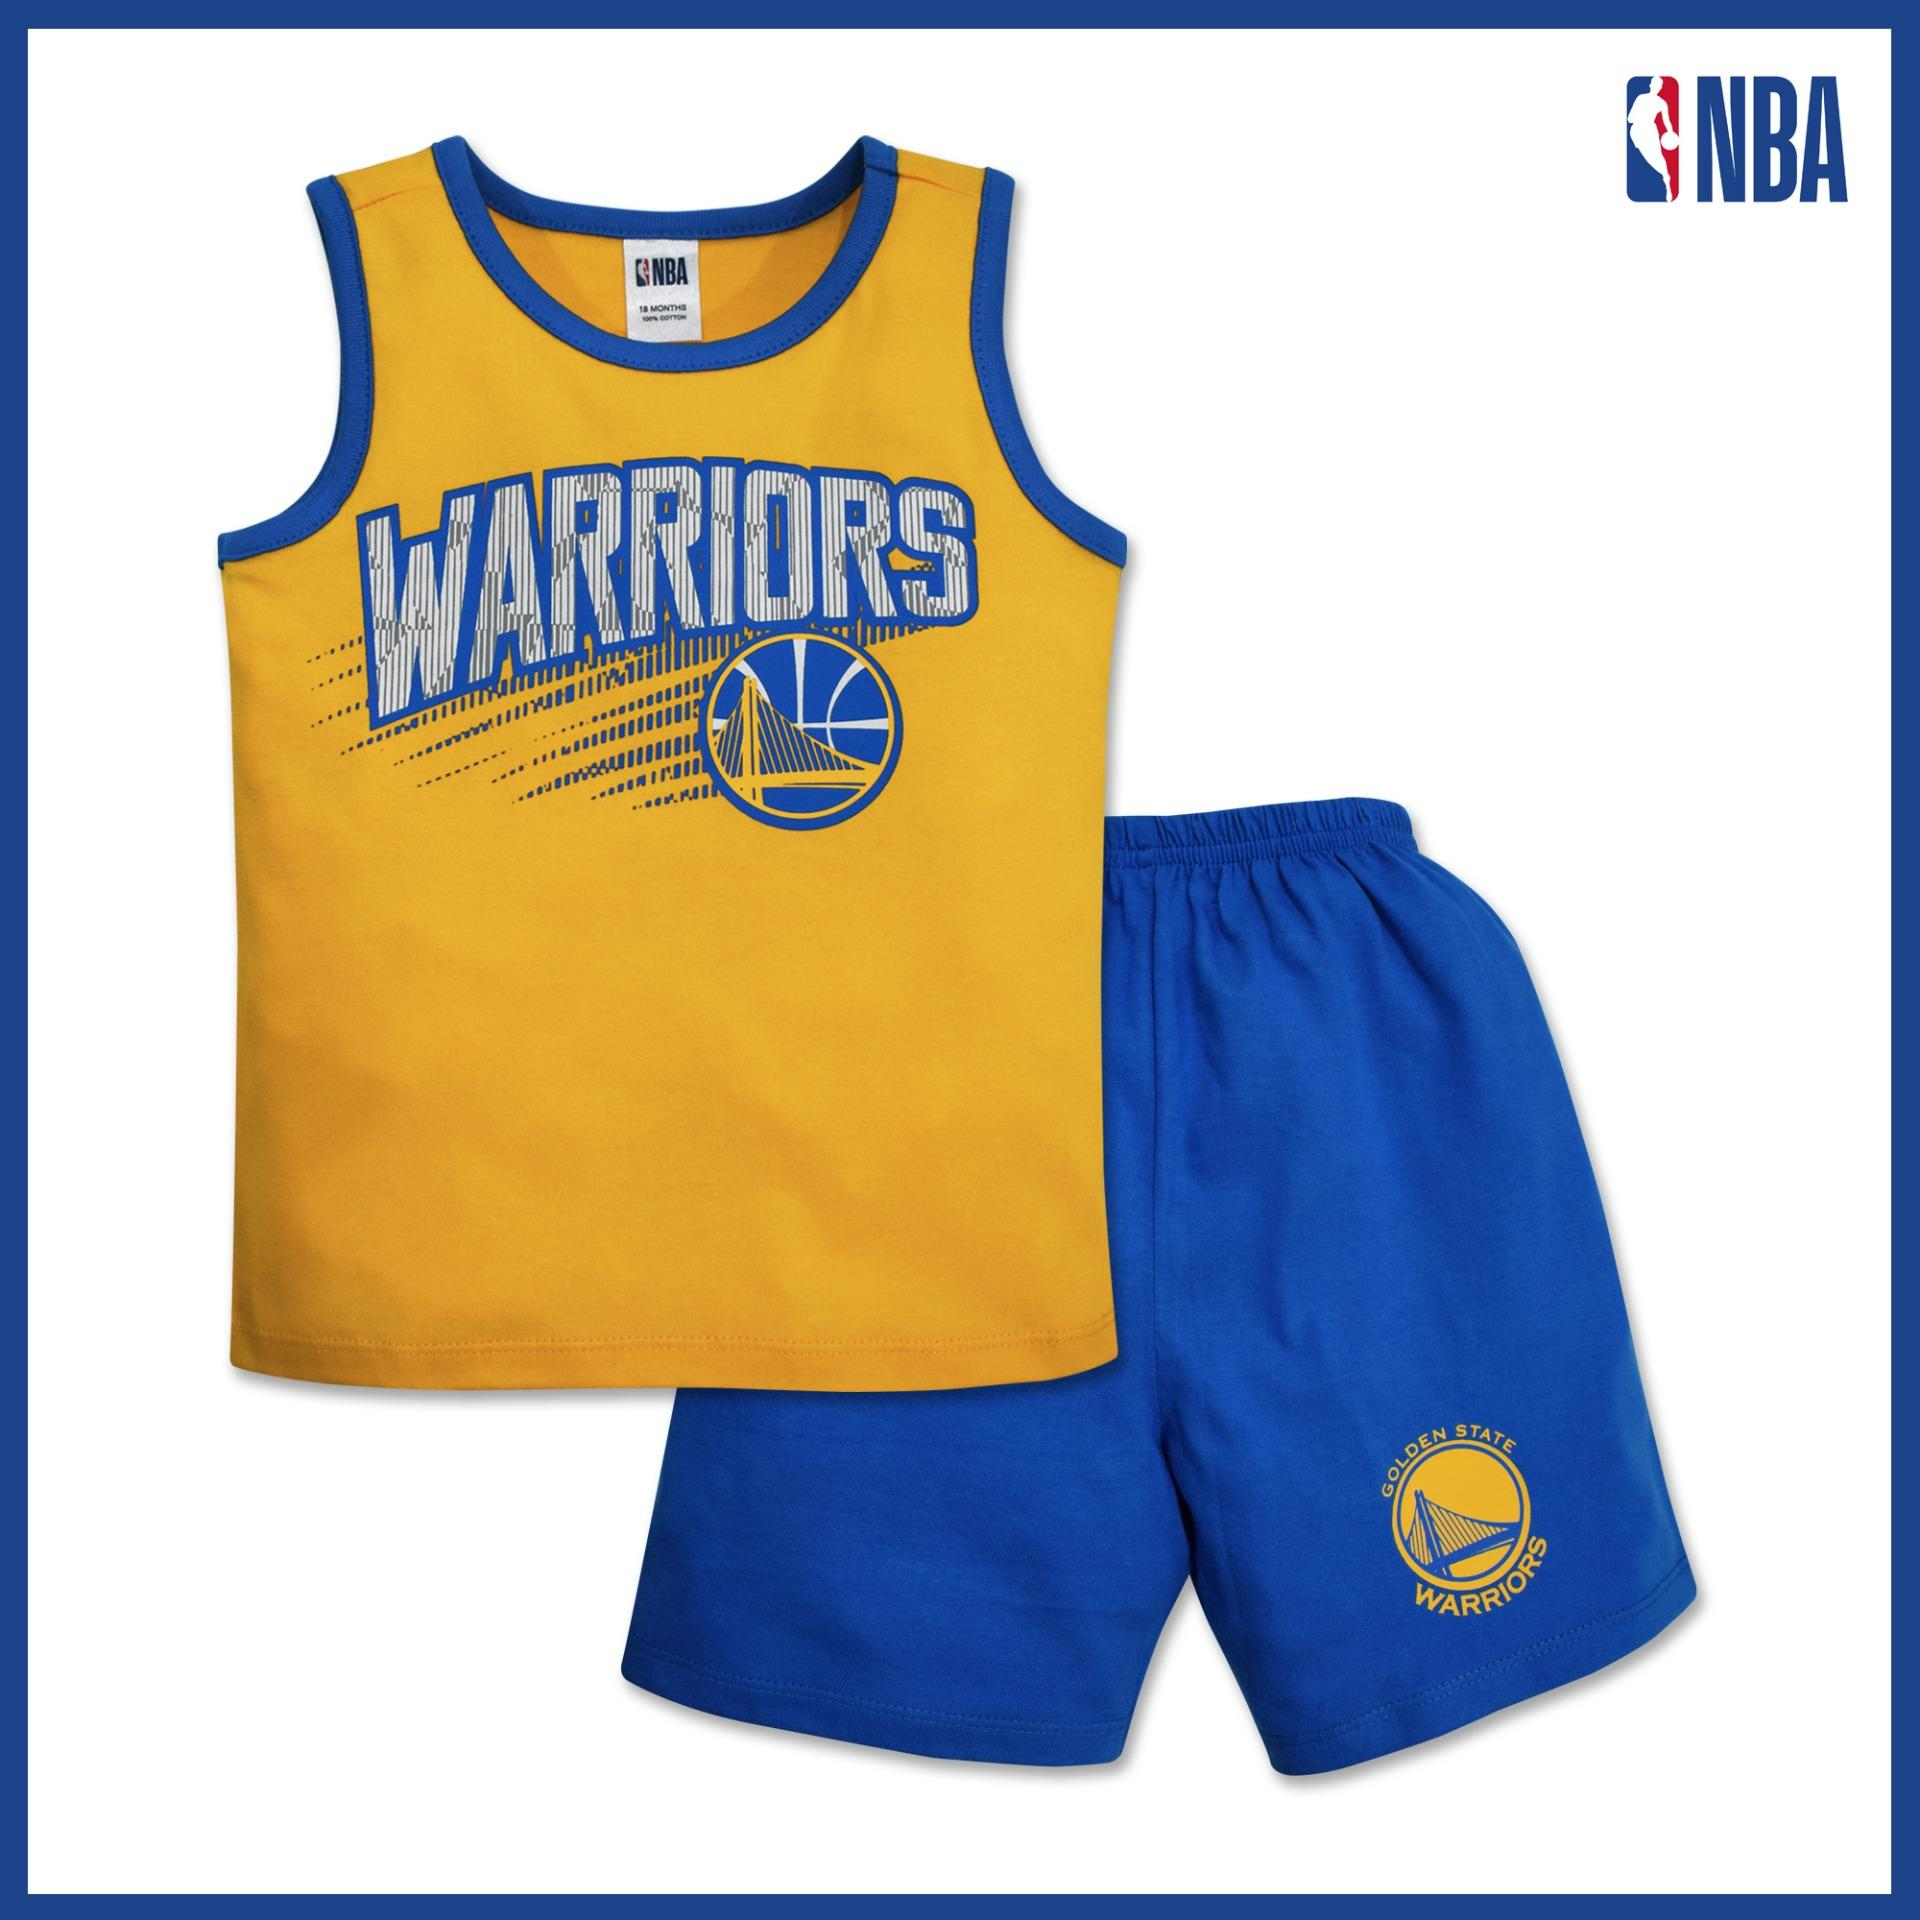 a252a19610c Product details of NBA Baby - Sando and Shorts Set (Jersey WM Secondary -  Warriors)